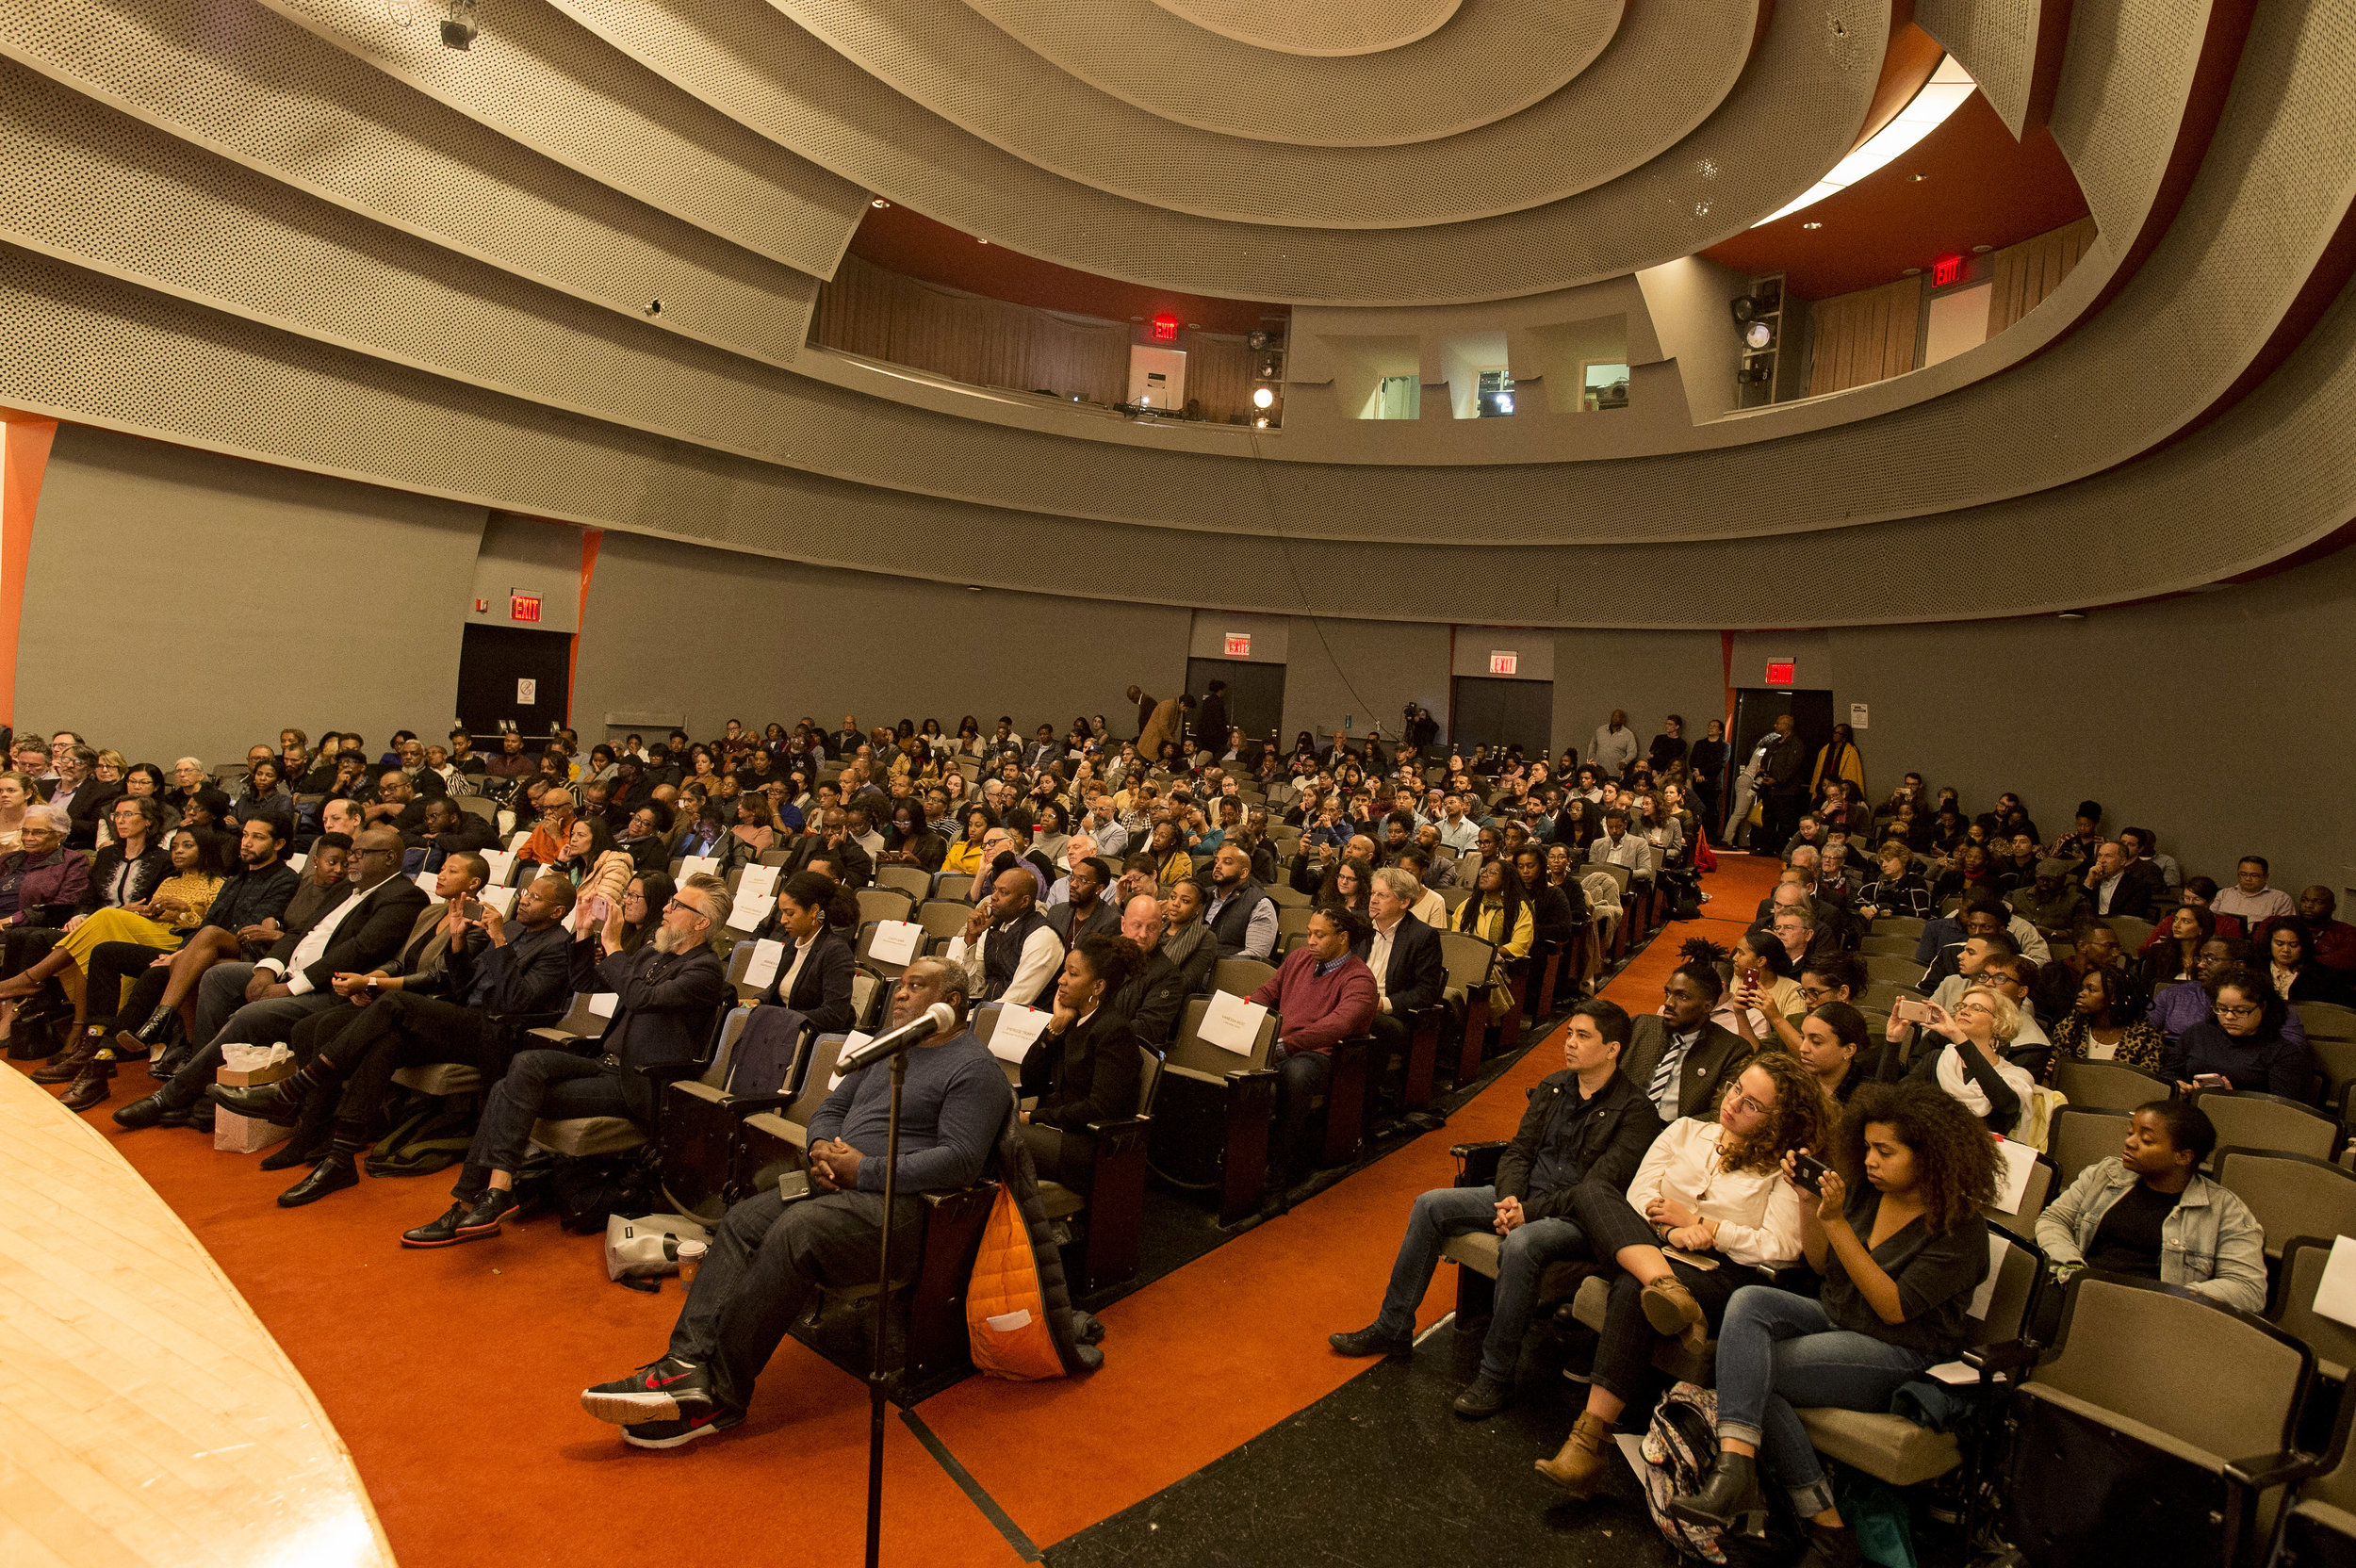 This year's conference had the largest attendance in NOMA history.